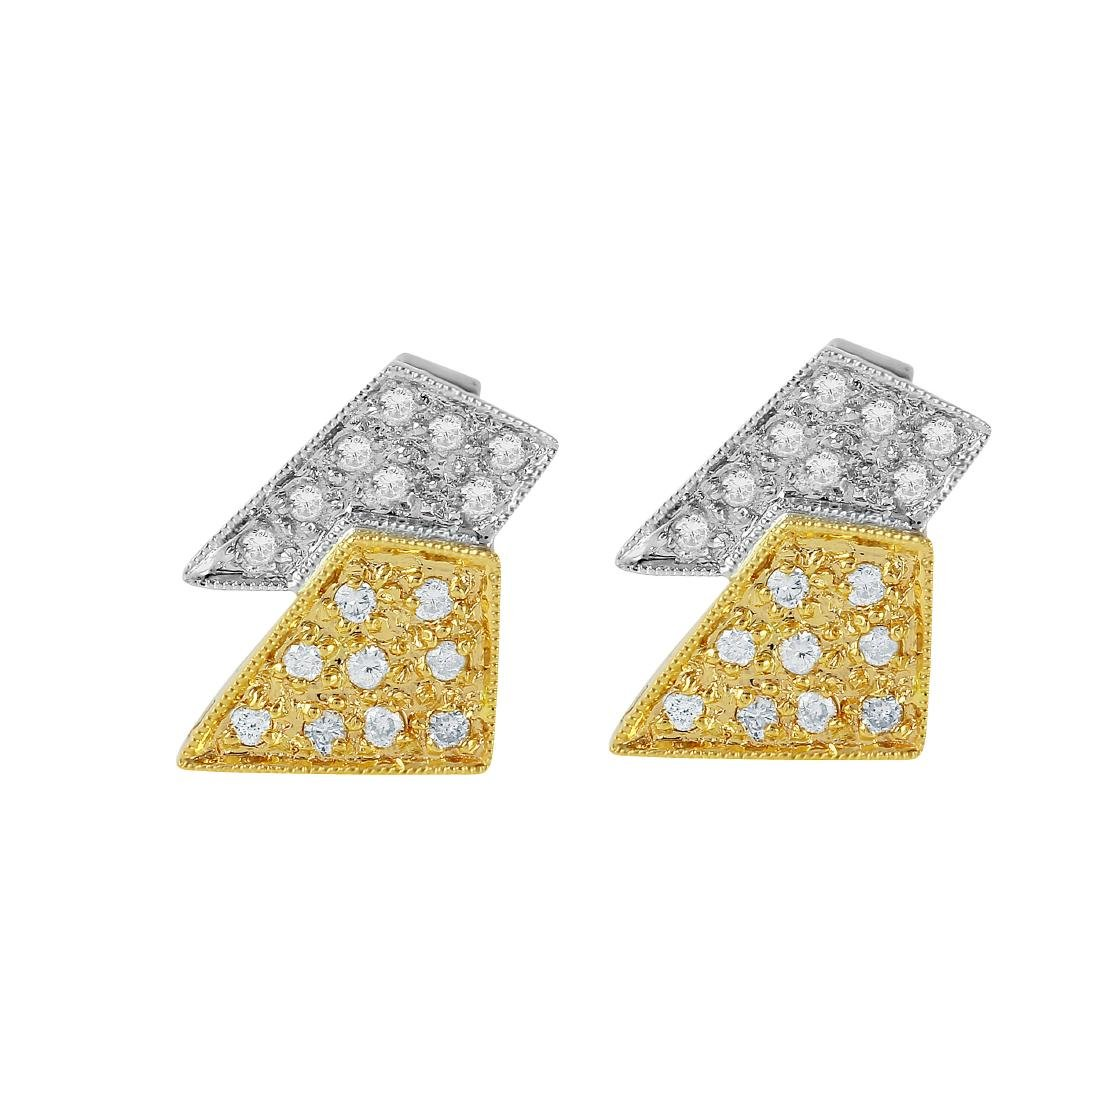 14KT Two Tone Gold Diamond Stud Earrings - 4